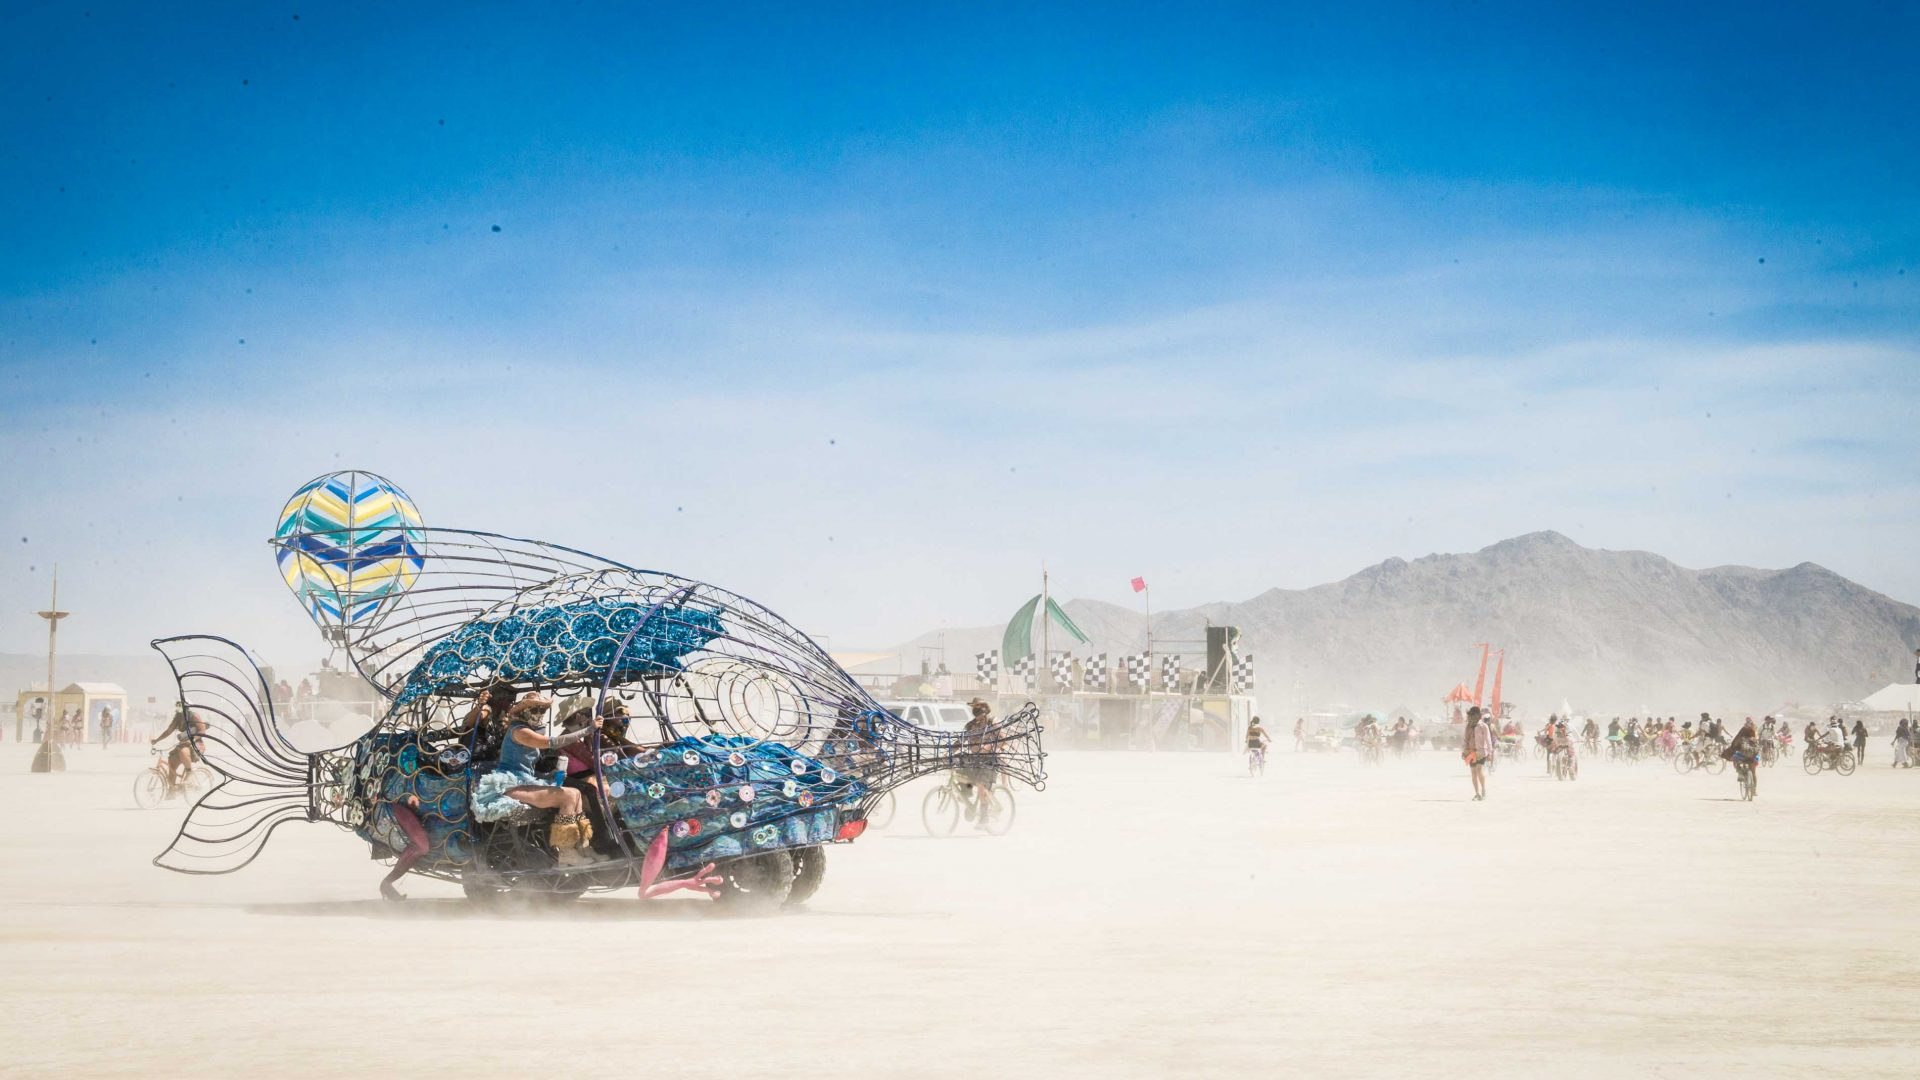 These Photos Capture The Desert Utopia Of Burning Man